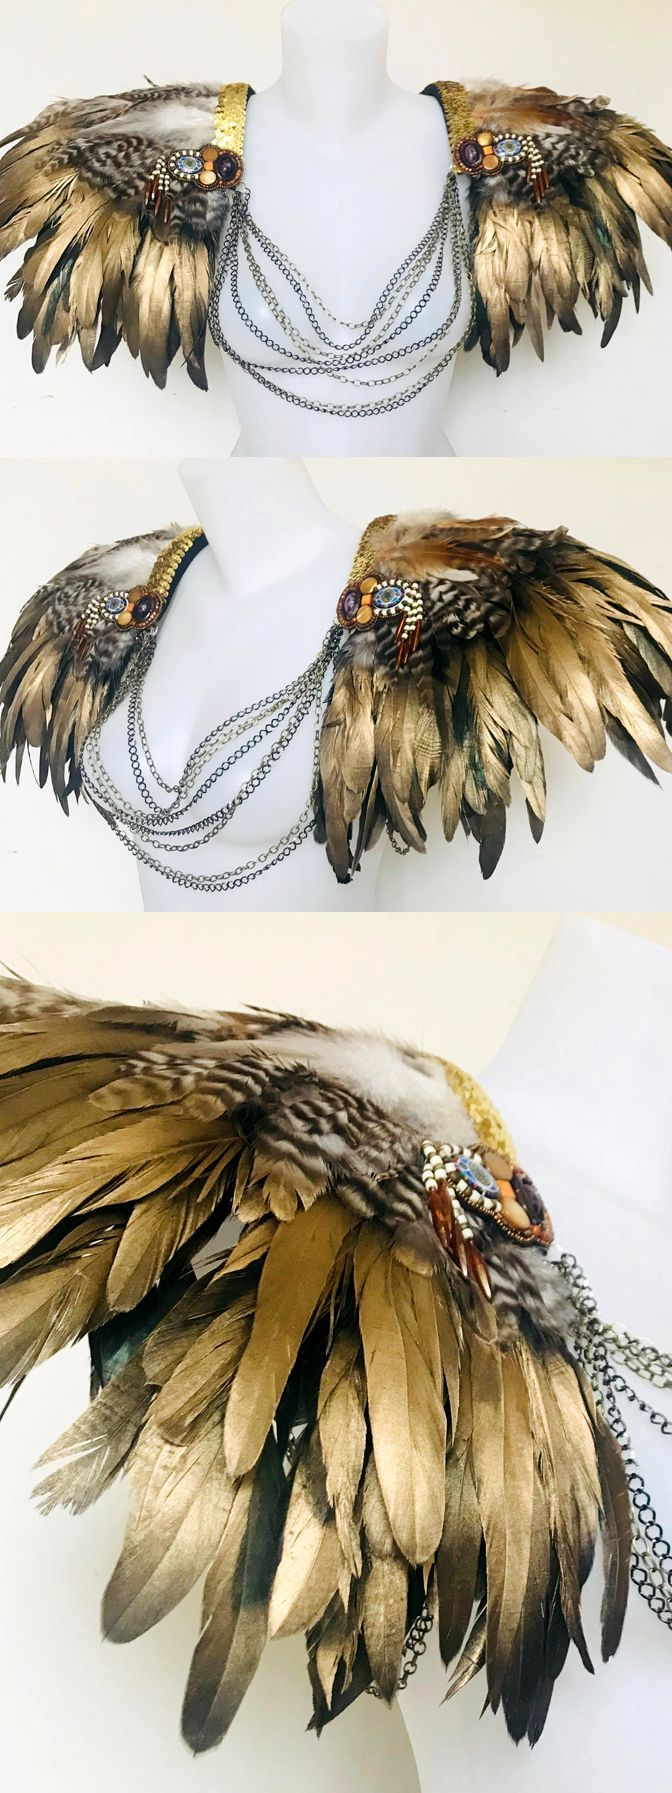 Black, natural and gold hand crafted feather wings/epaulettes with embellishment and gold trim. The epaulettes have been trimmed with gold sequin elastic. Mad Max meets Moulin Rouge! Gold feather festival epaulettes, festival feather wings, feather should